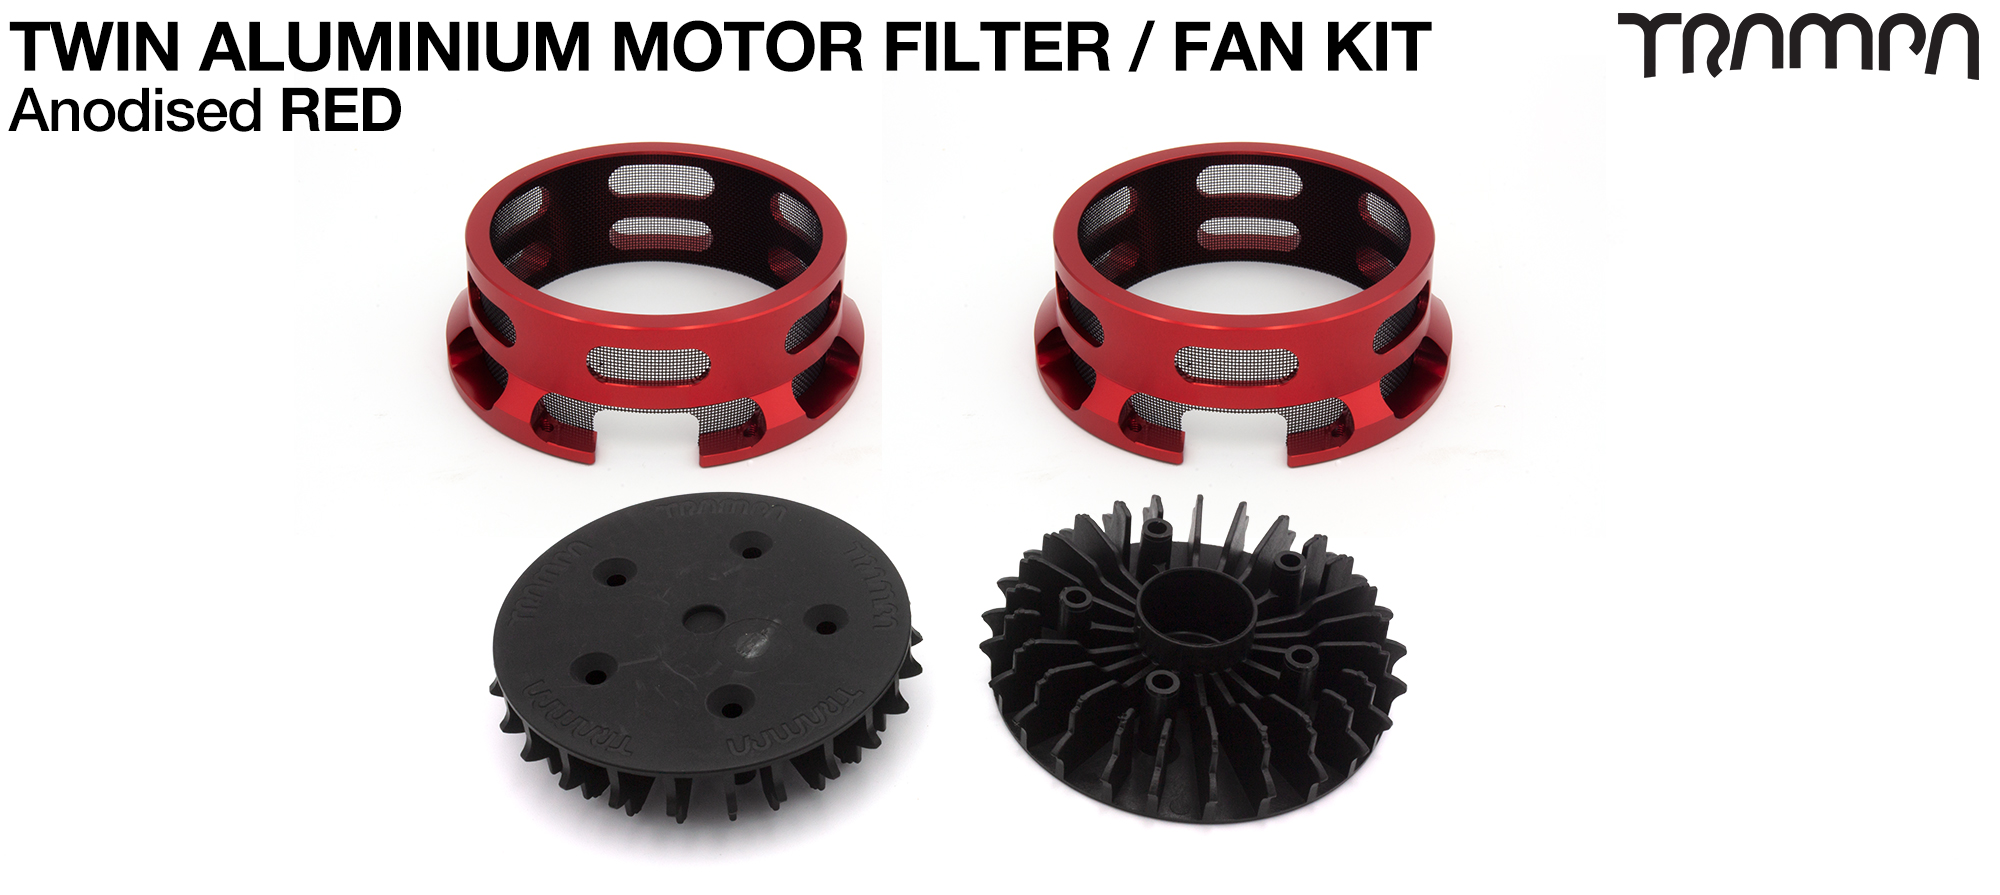 14FiFties BLACK Motor protection Housing with RED particle Filter & Fan - TWIN